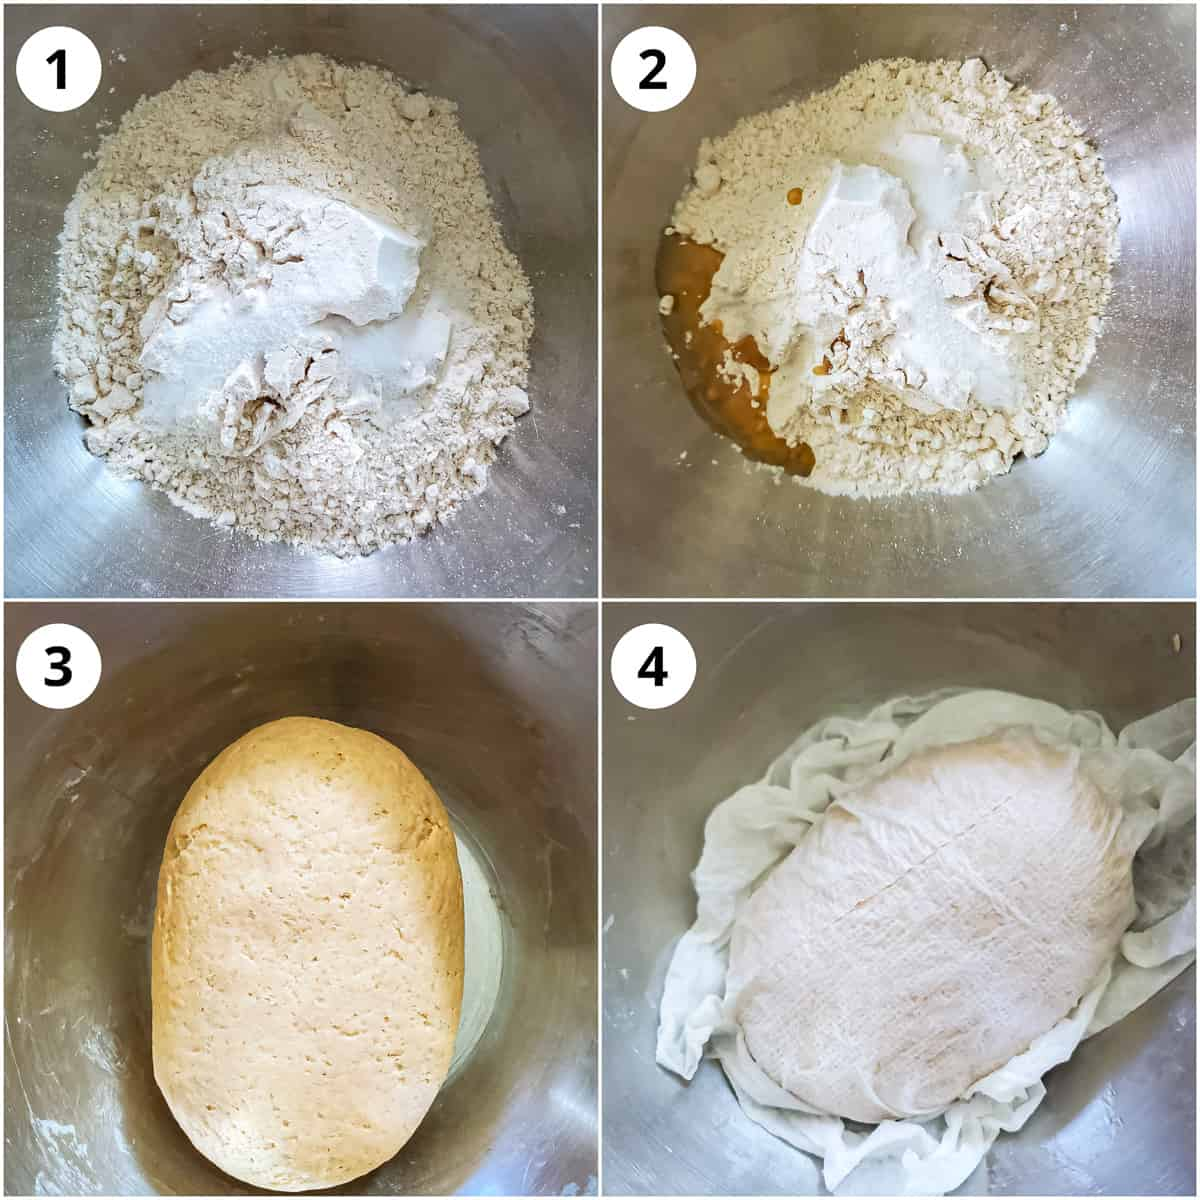 Making dough for poori and covering it to rest